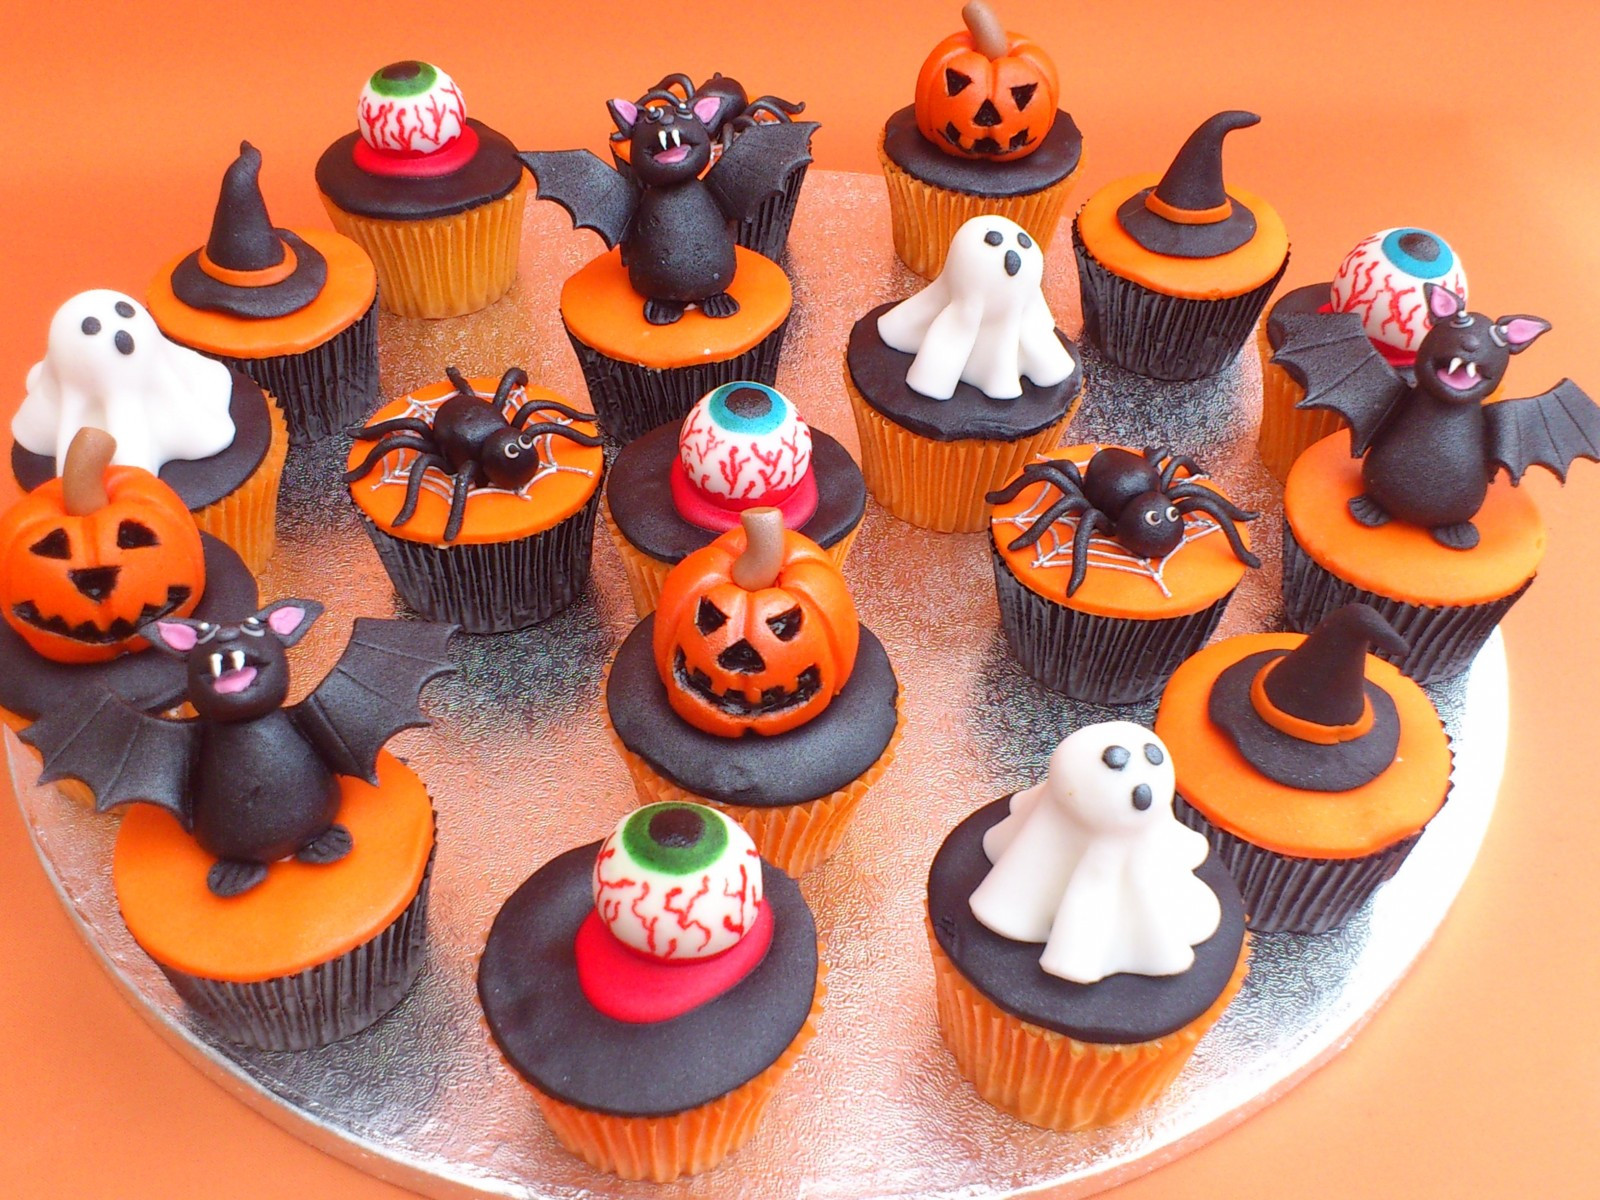 Halloween Cupcake Cakes  Recipes for Halloween Cupcakes Cookies Punch Cakes with